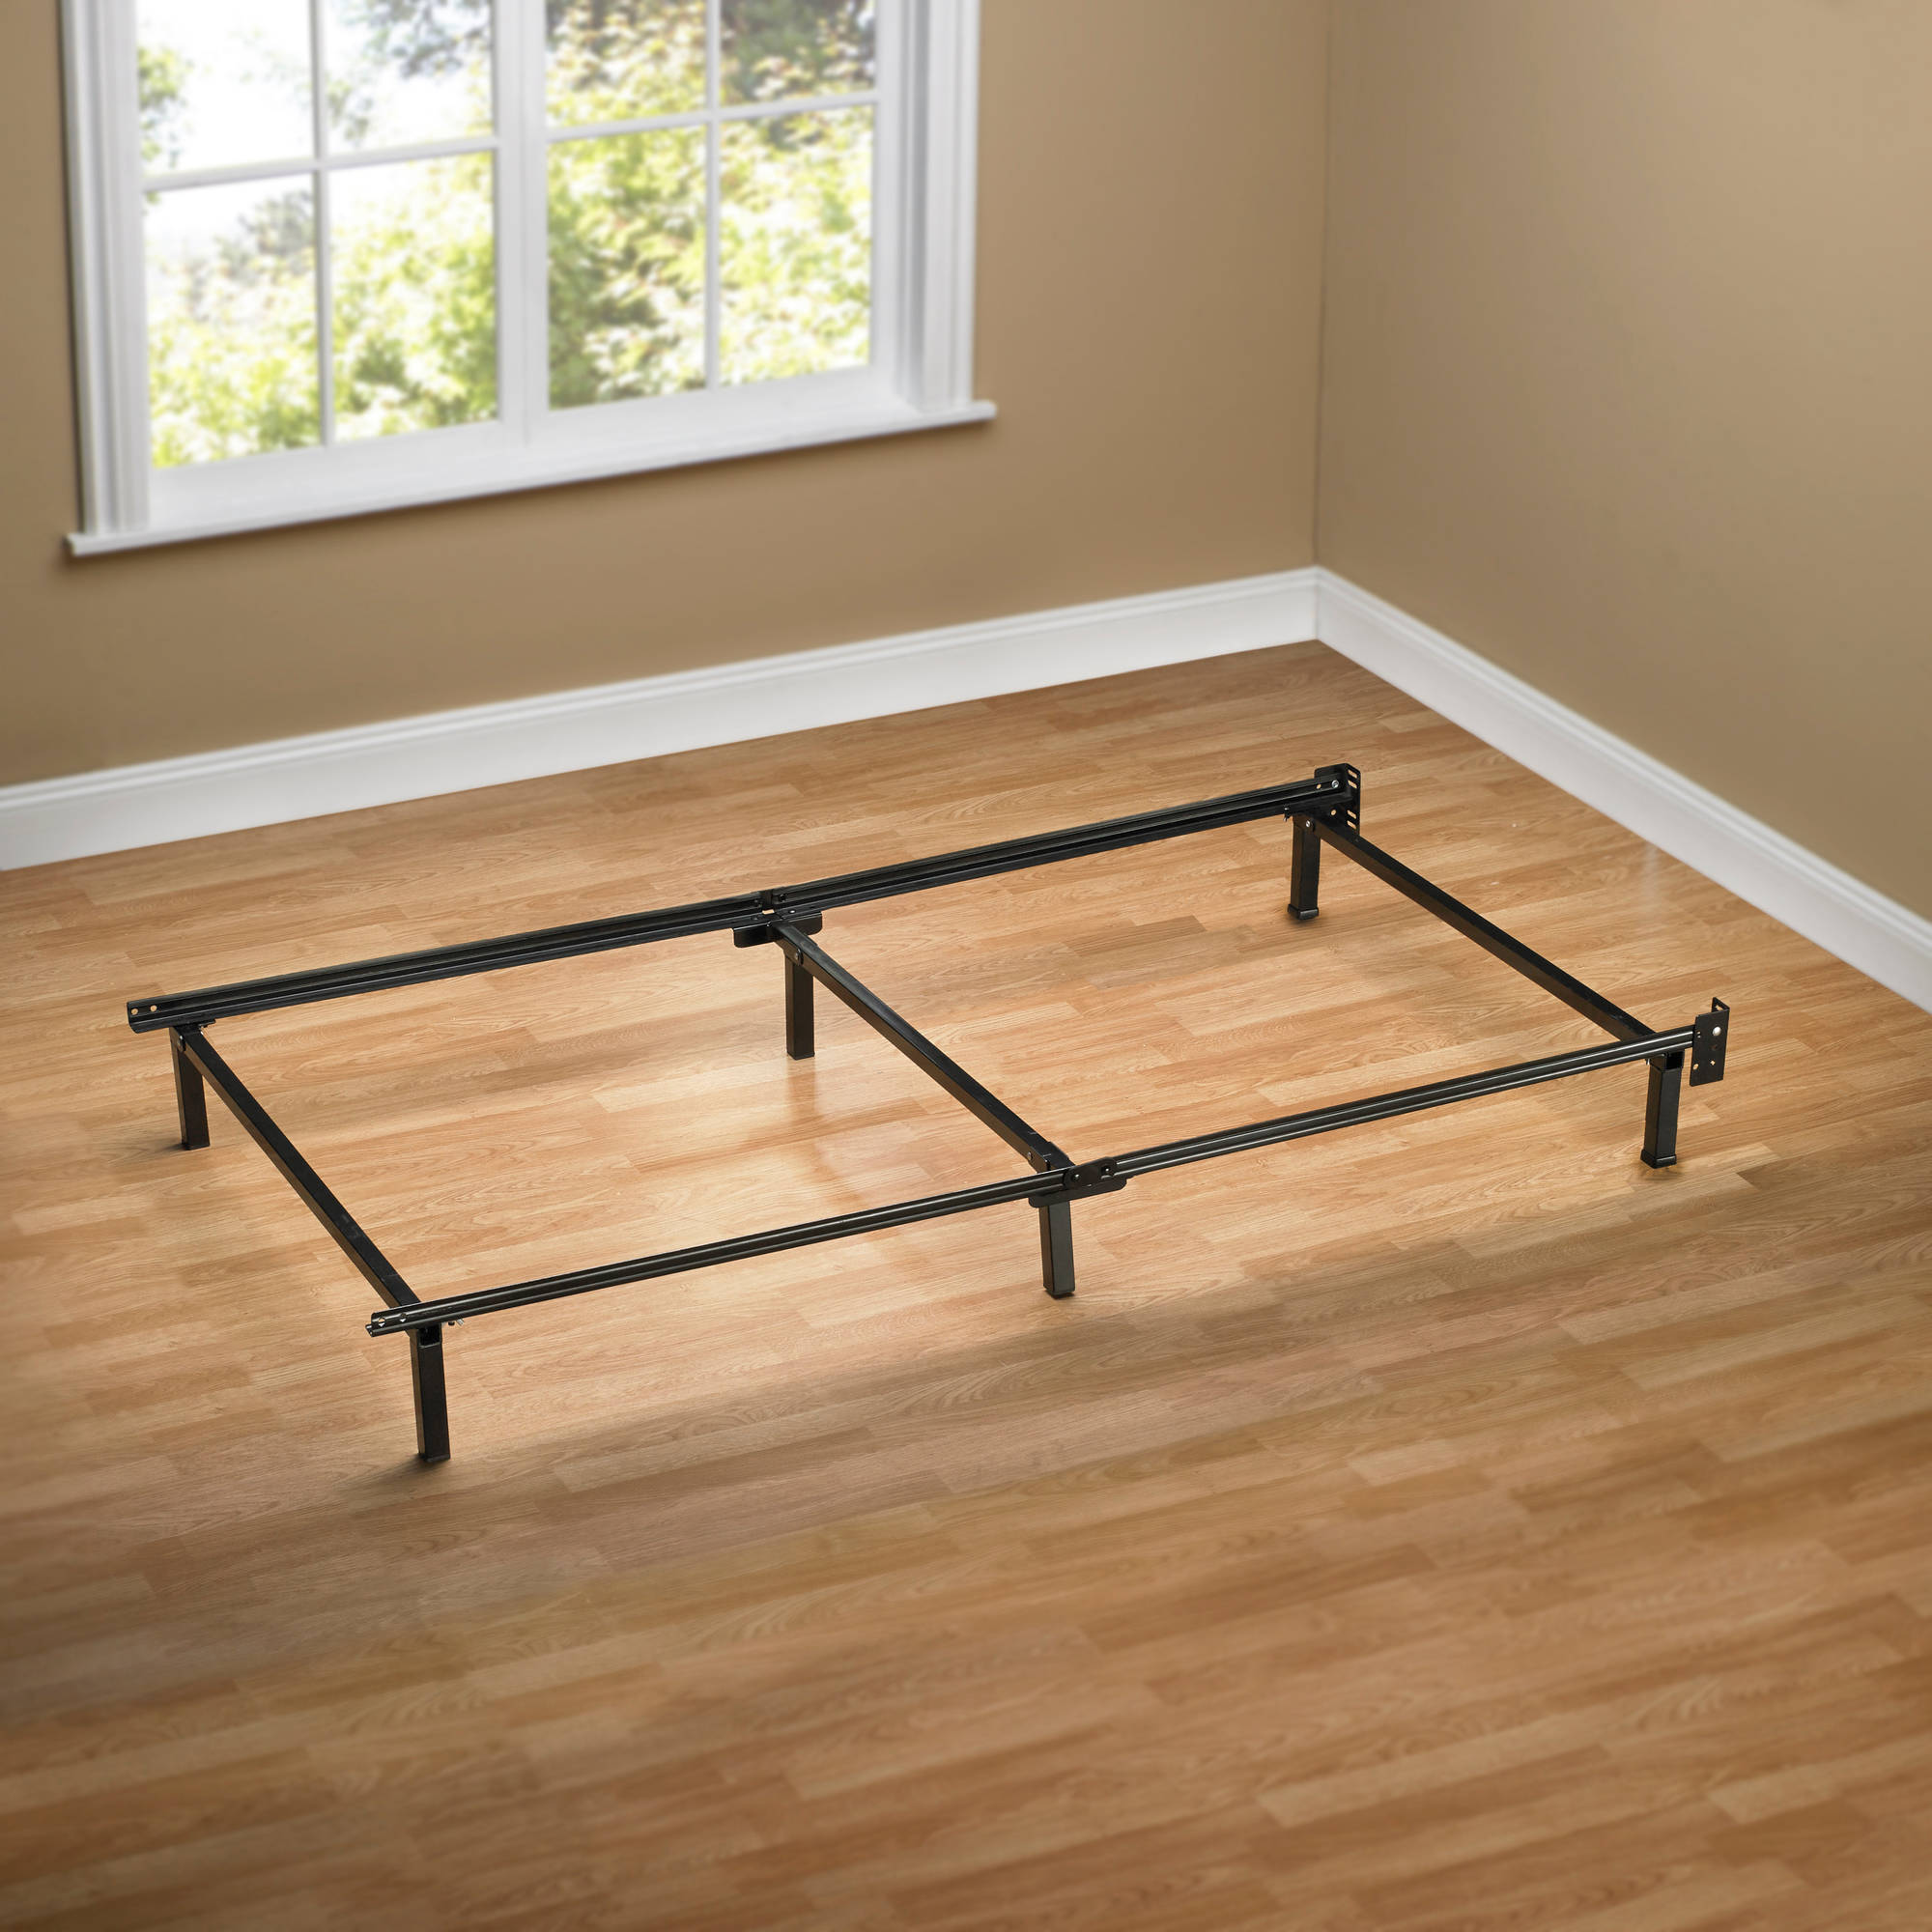 mainstays adjustable metal bed frame walmartcom